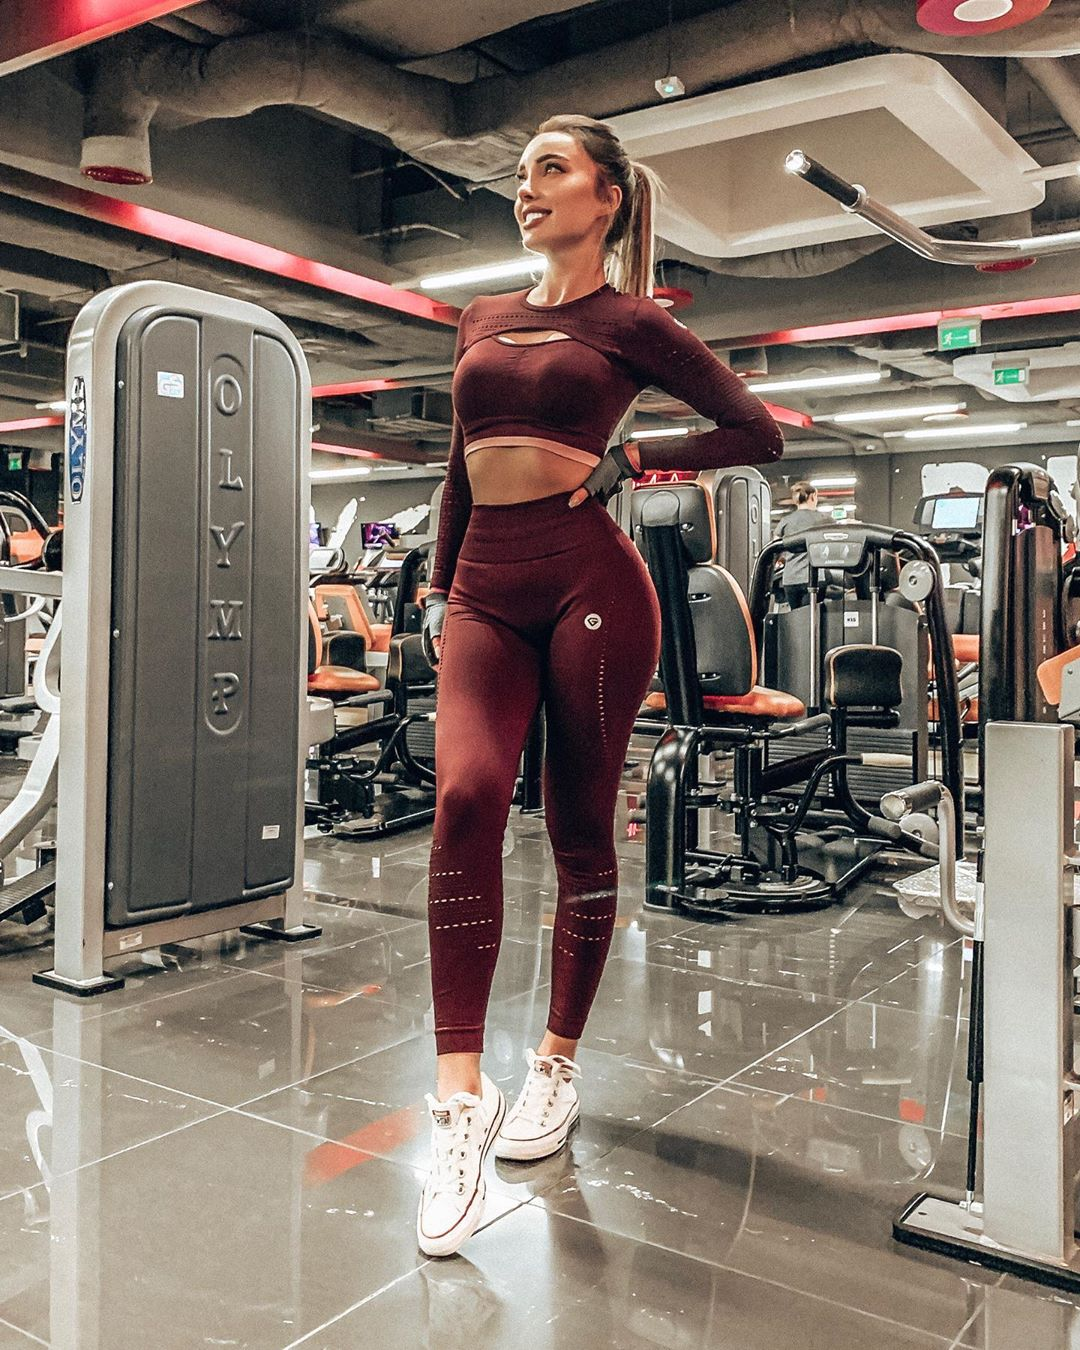 Monika-Mankiewicz-Owsianik-Wallpapers-Insta-Fit-Bio-21